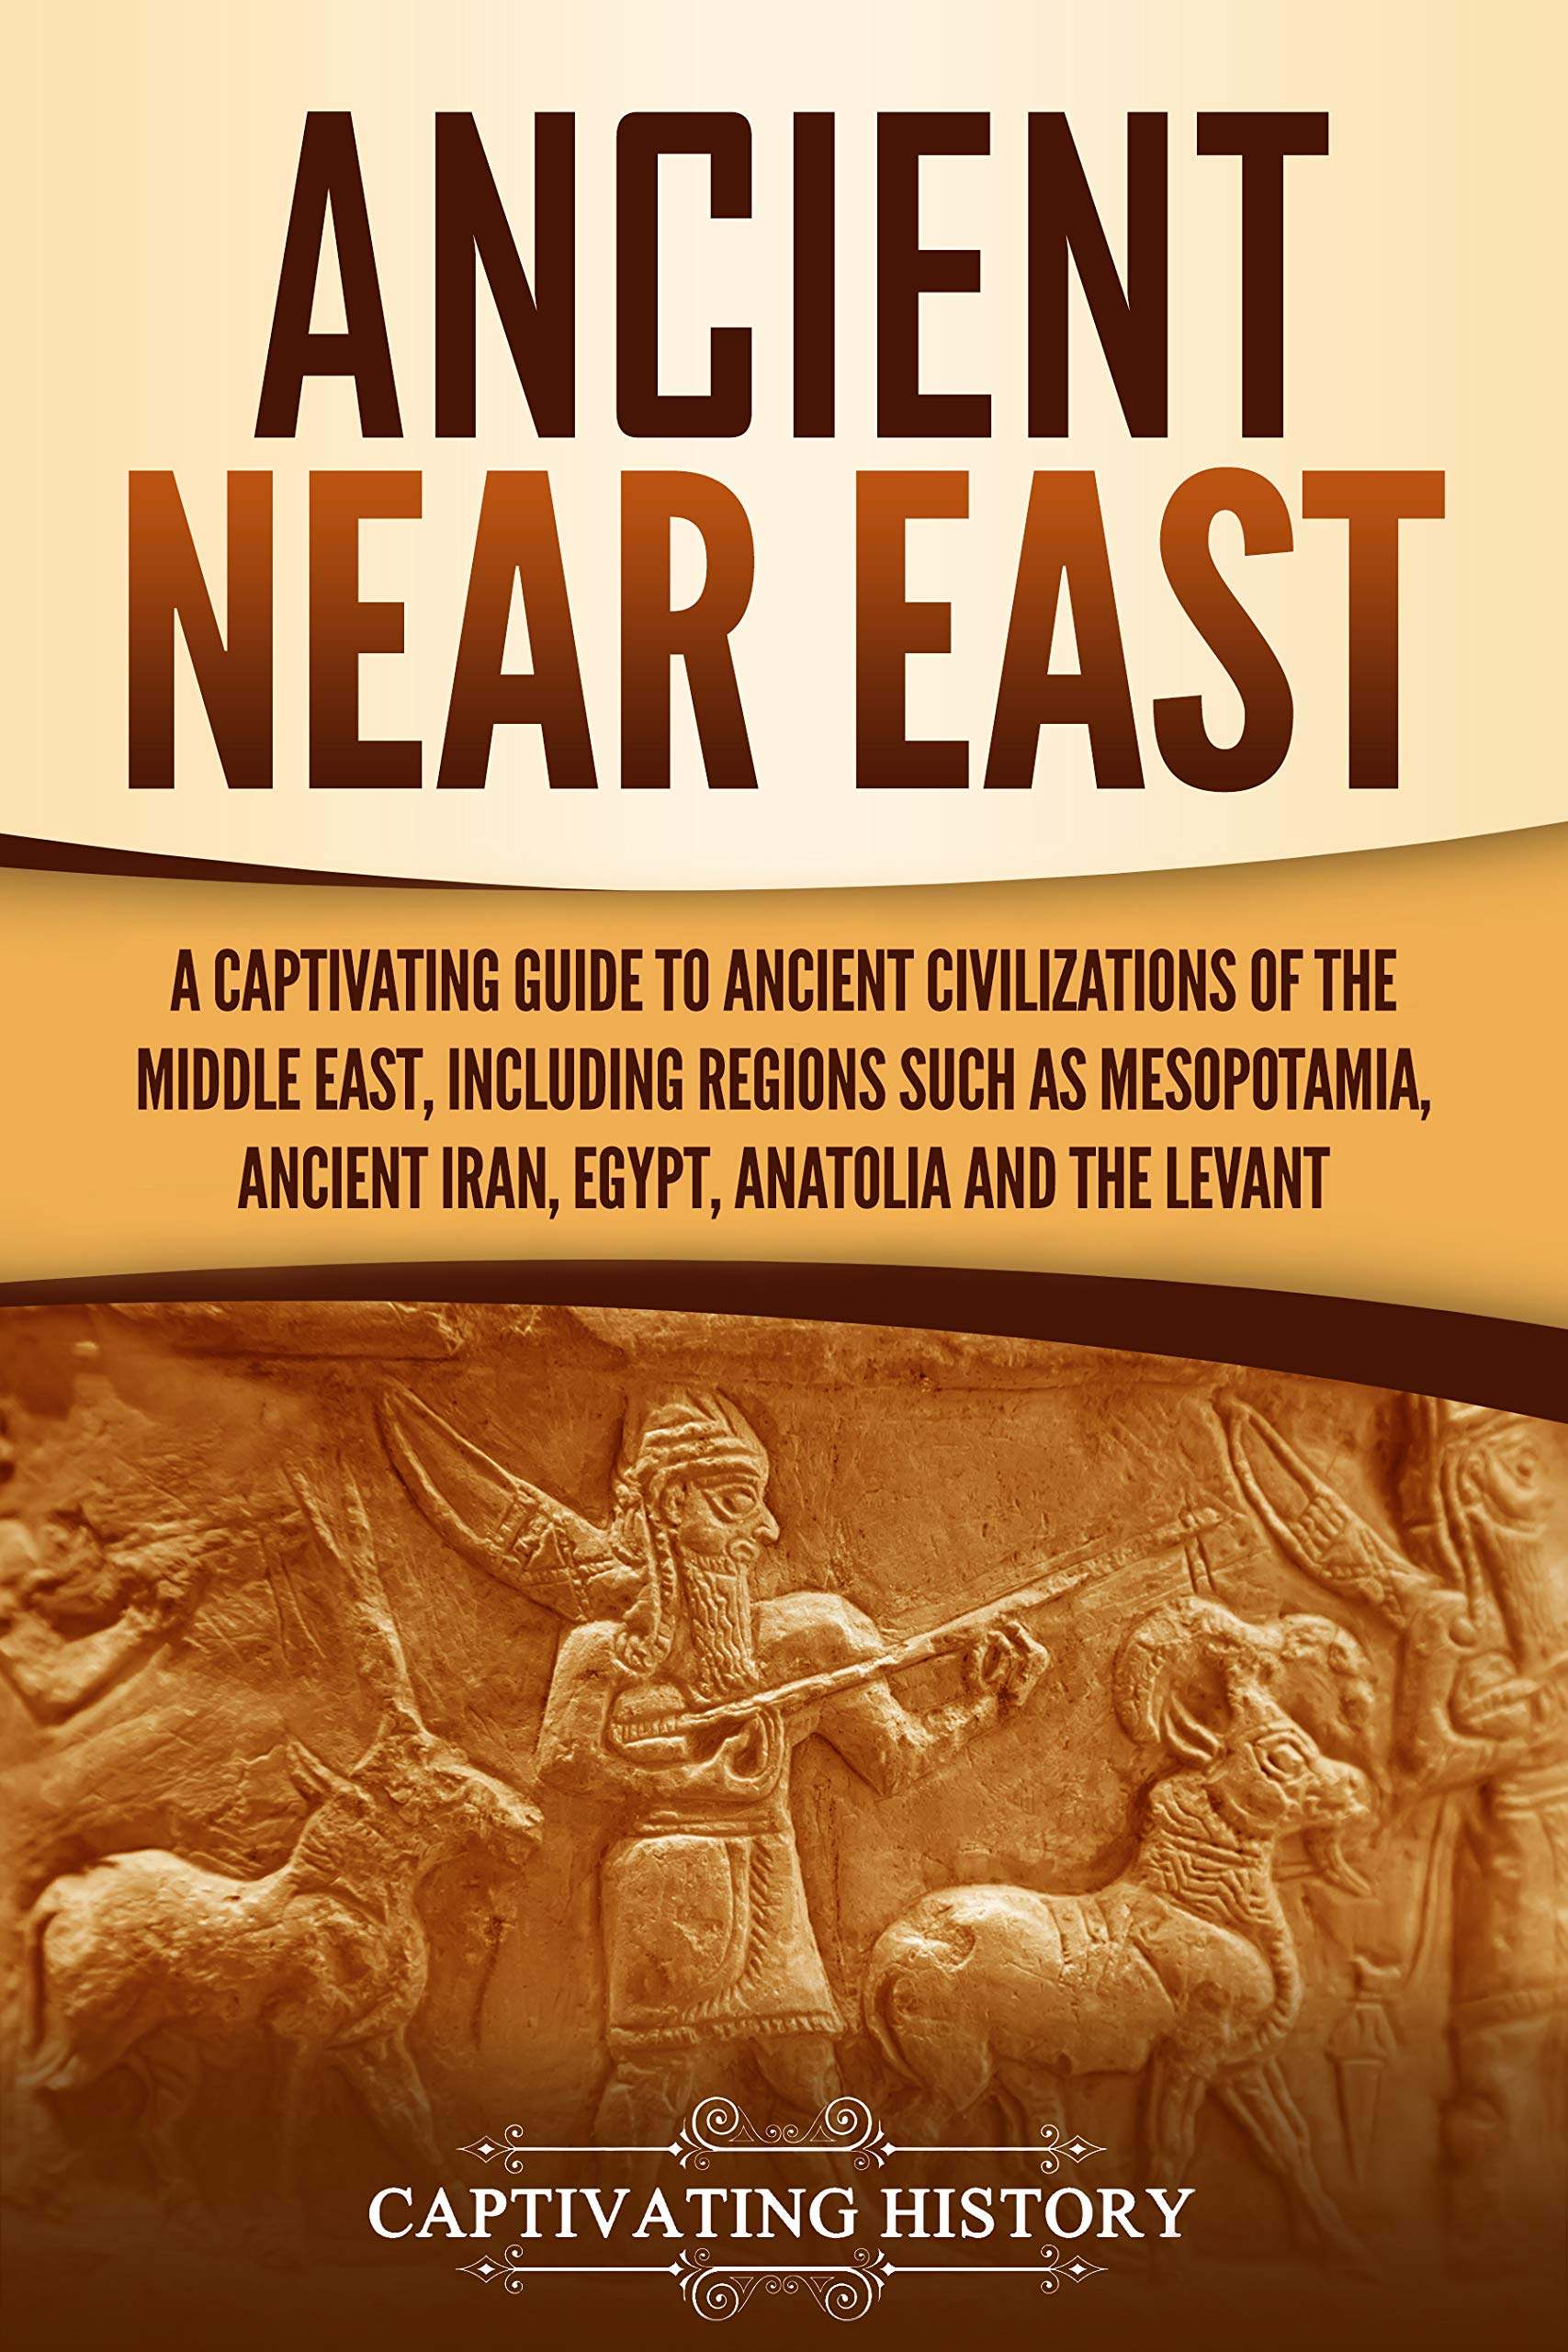 Ancient Near East: A Captivating Guide to Ancient Civilizations of the Middle East, Including Regions Such as Mesopotamia, Ancient Iran, Egypt, Anatolia, and the Levant